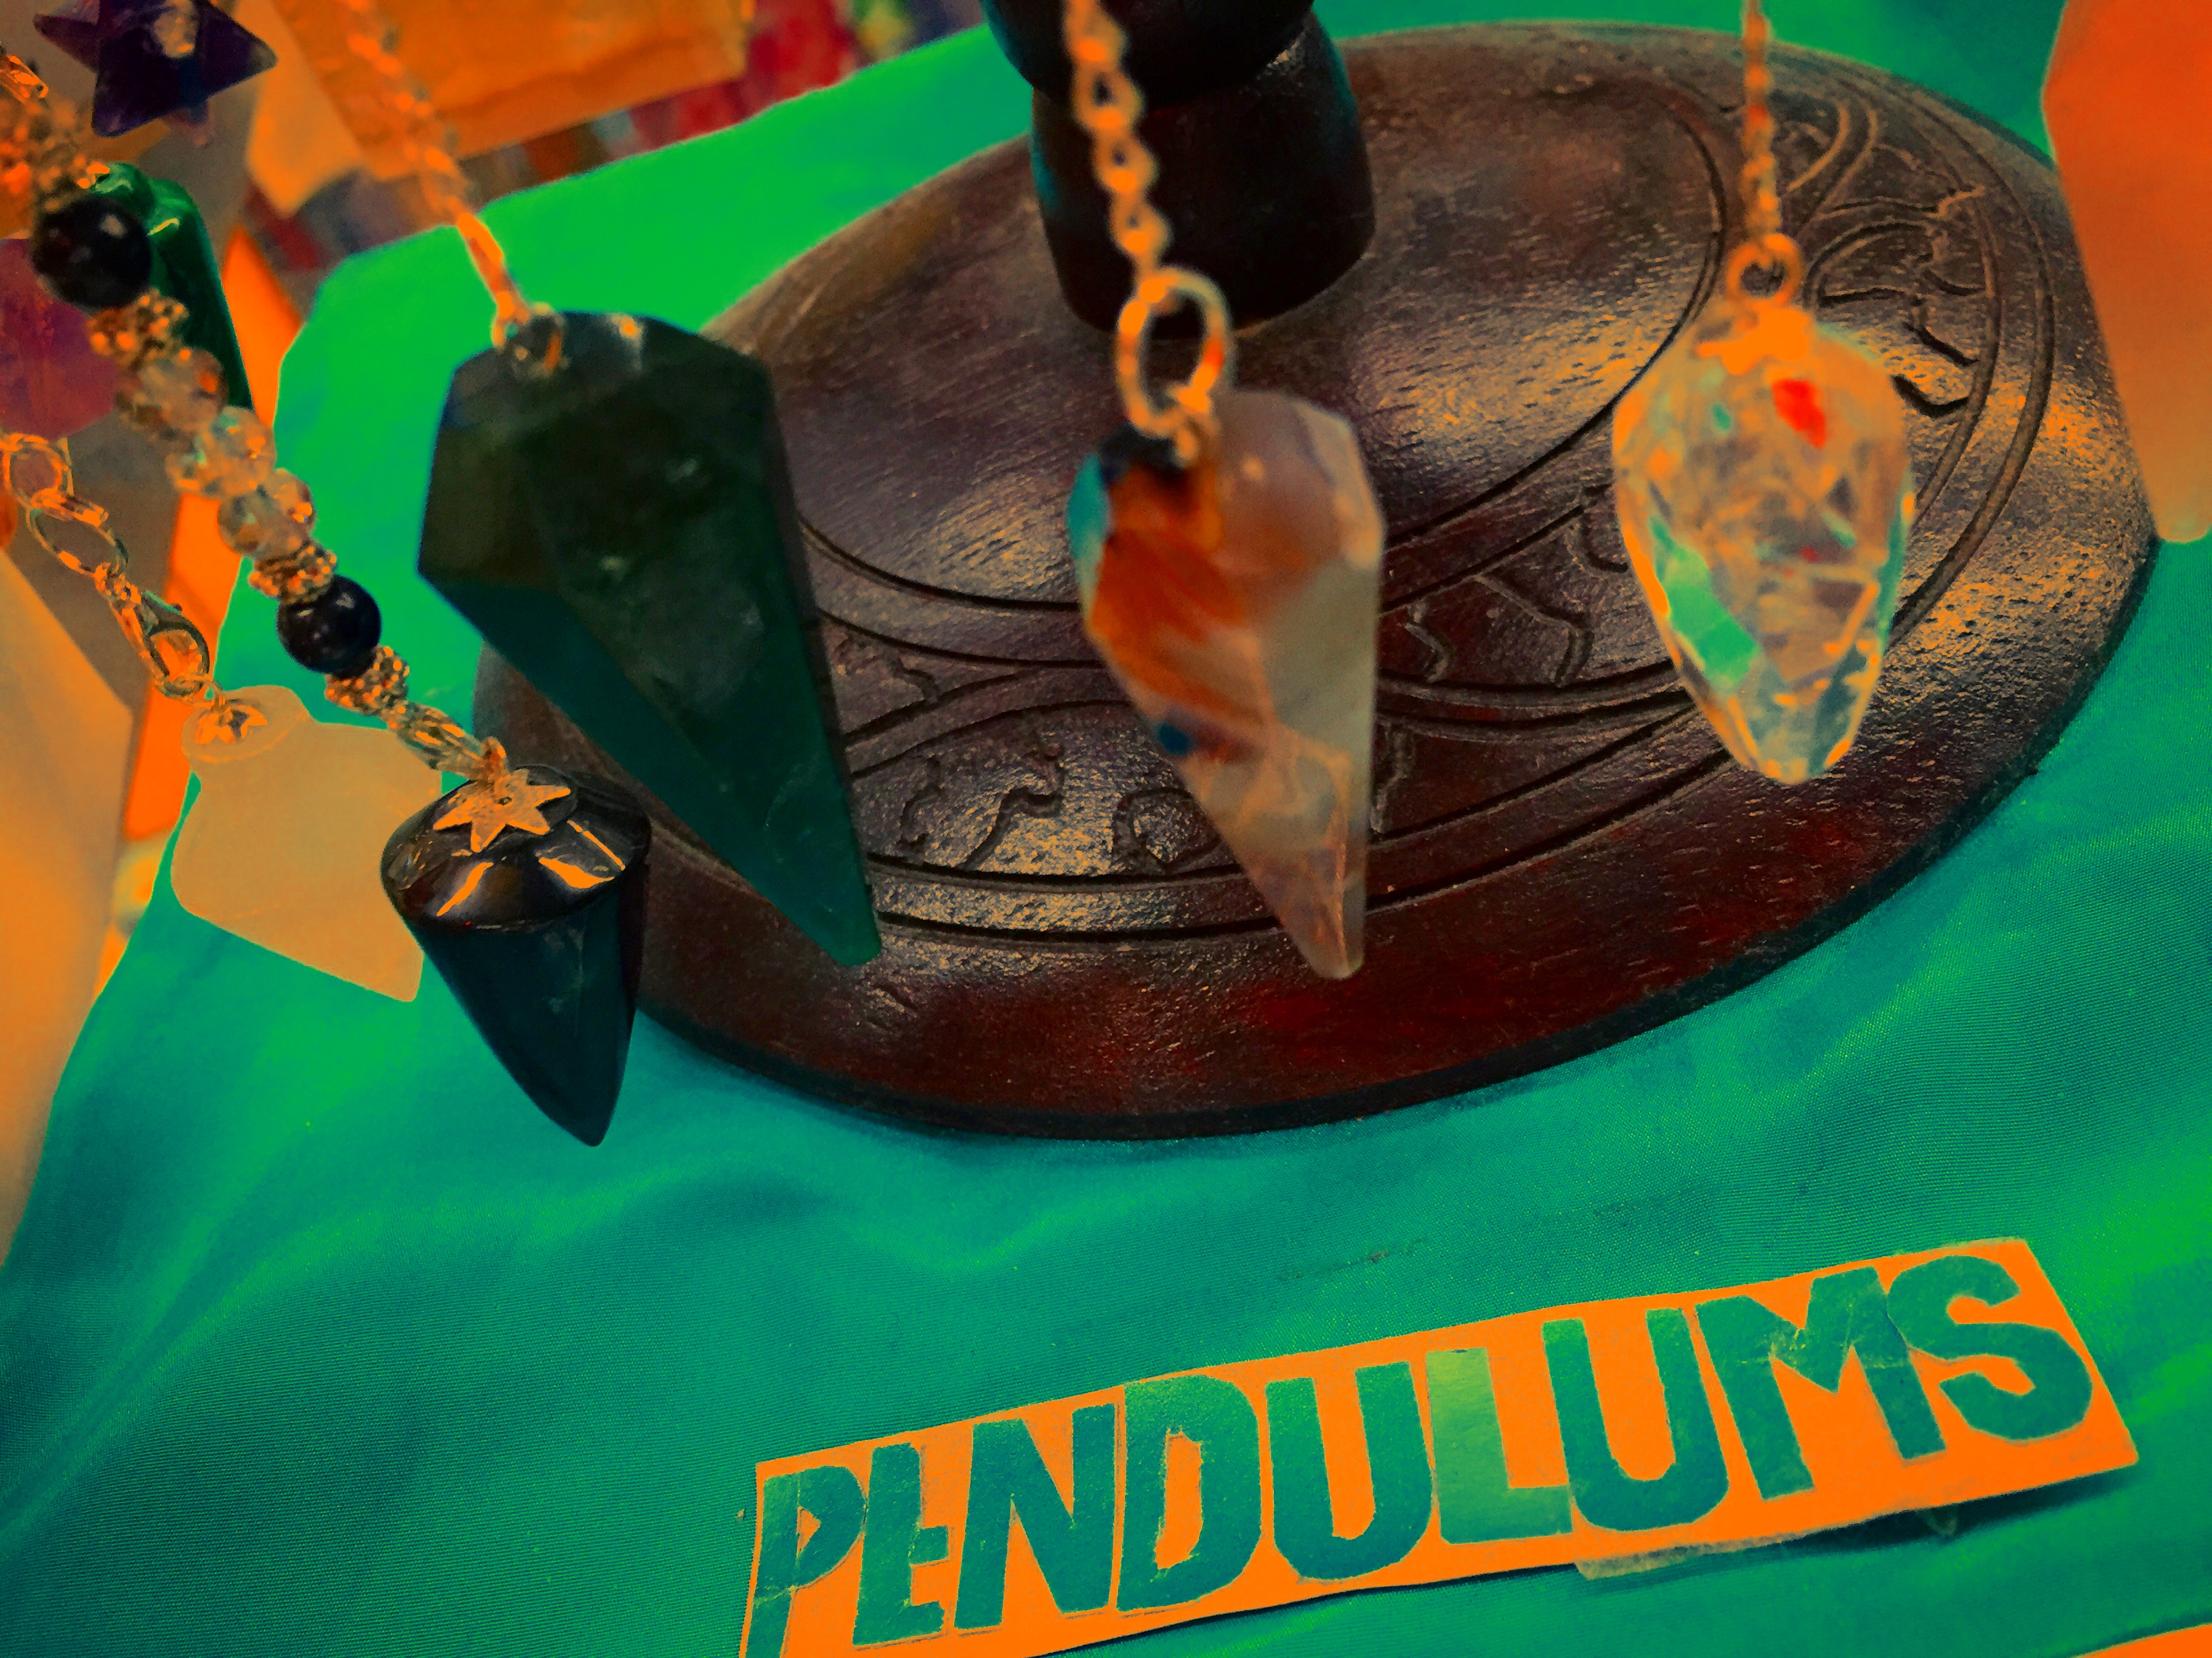 WE ARE PENDULUM PEOPLE.